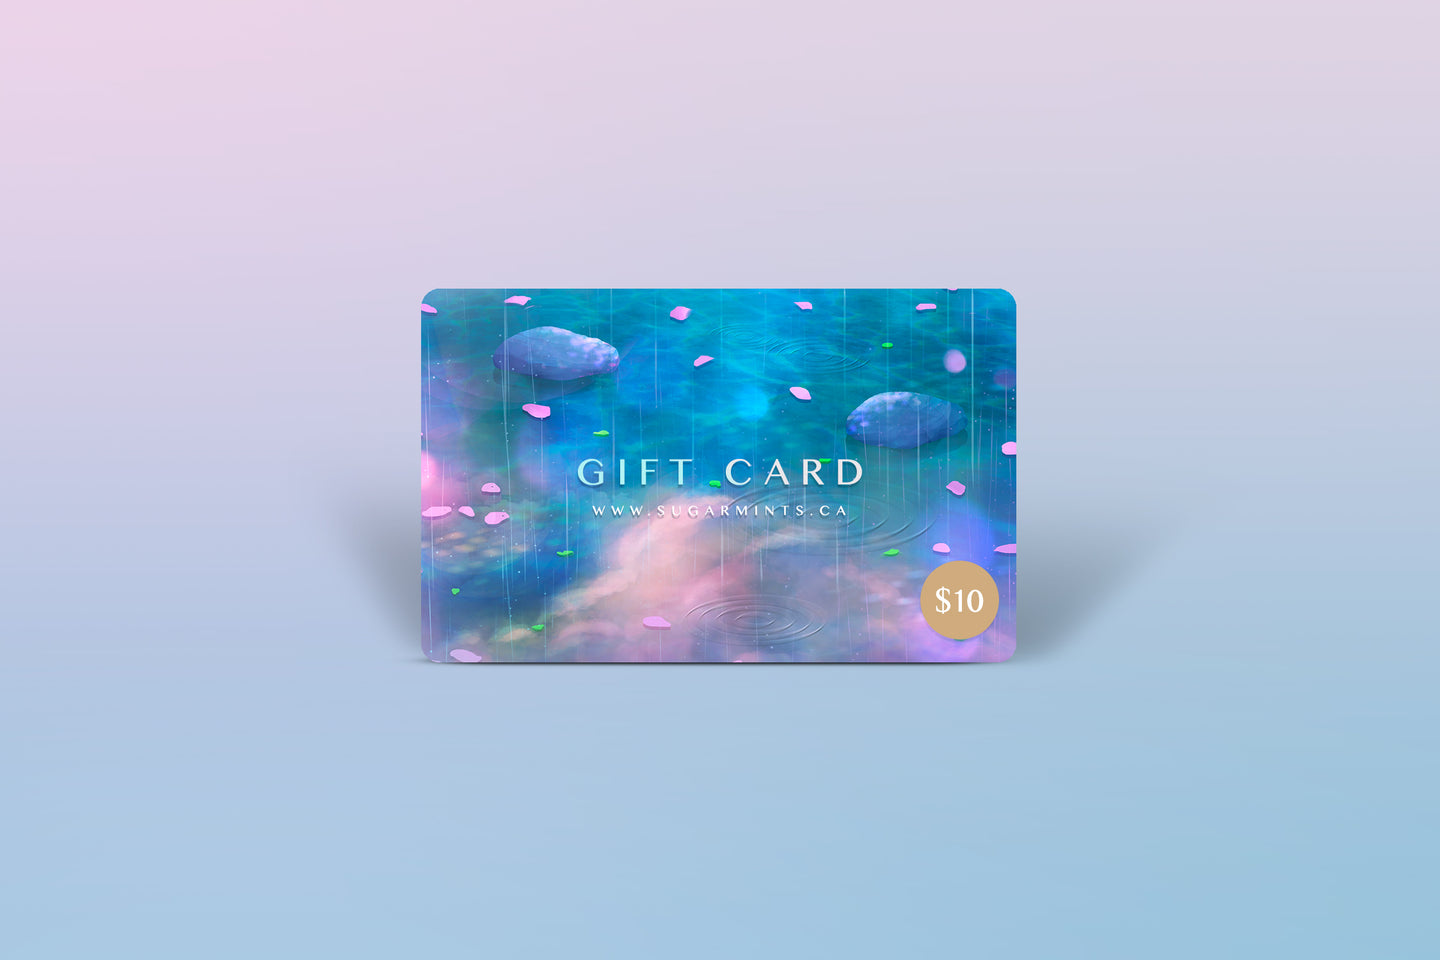 Gift Card - Sugarmints Artstore